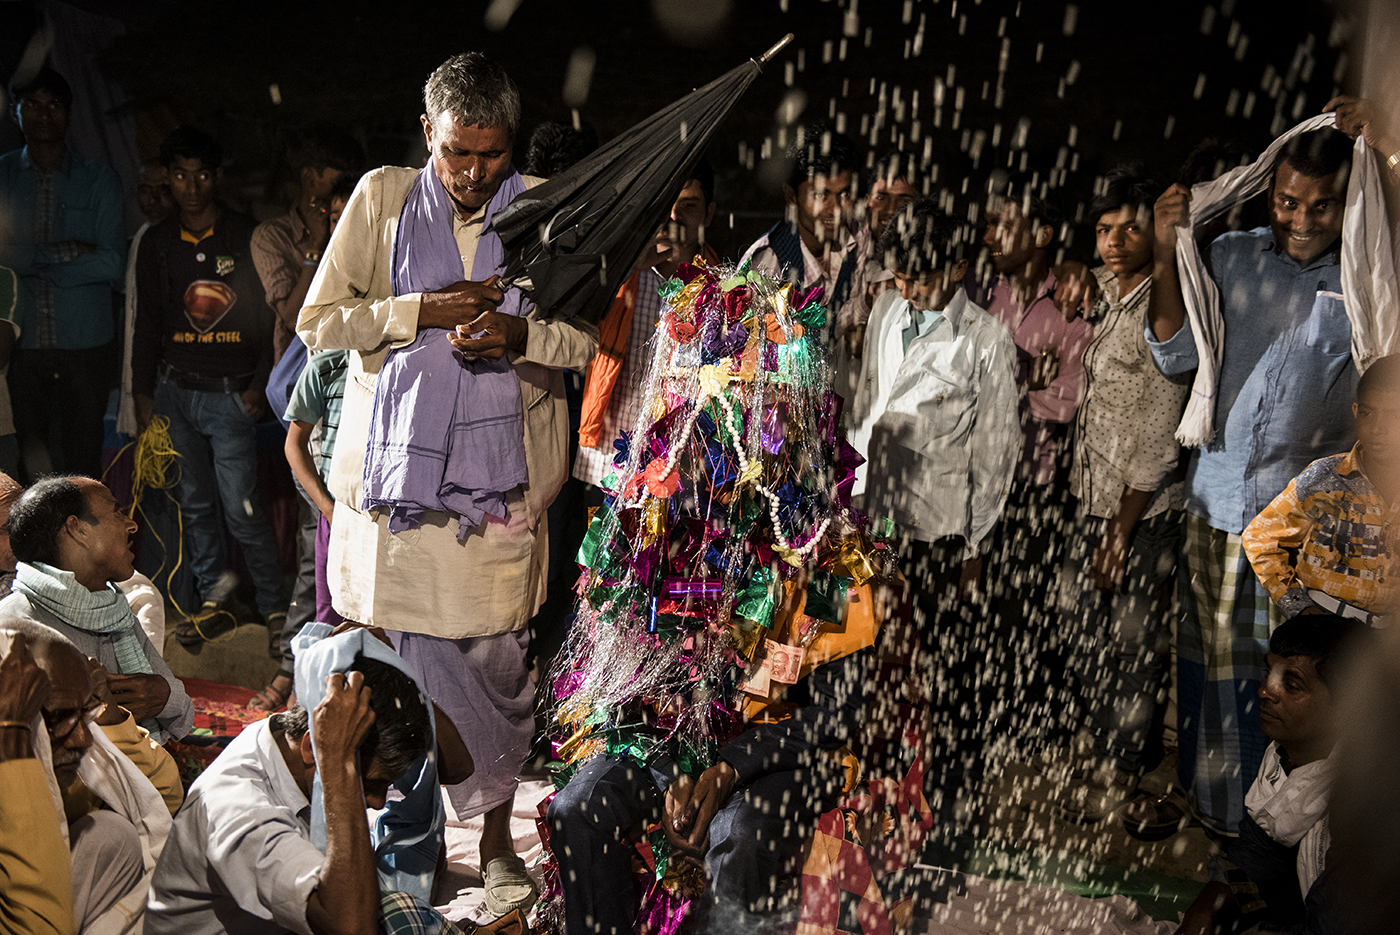 The groom, 21-year old Raju*, is welcomed in the house with ceremonies, as part of which, rice is being showered on him.